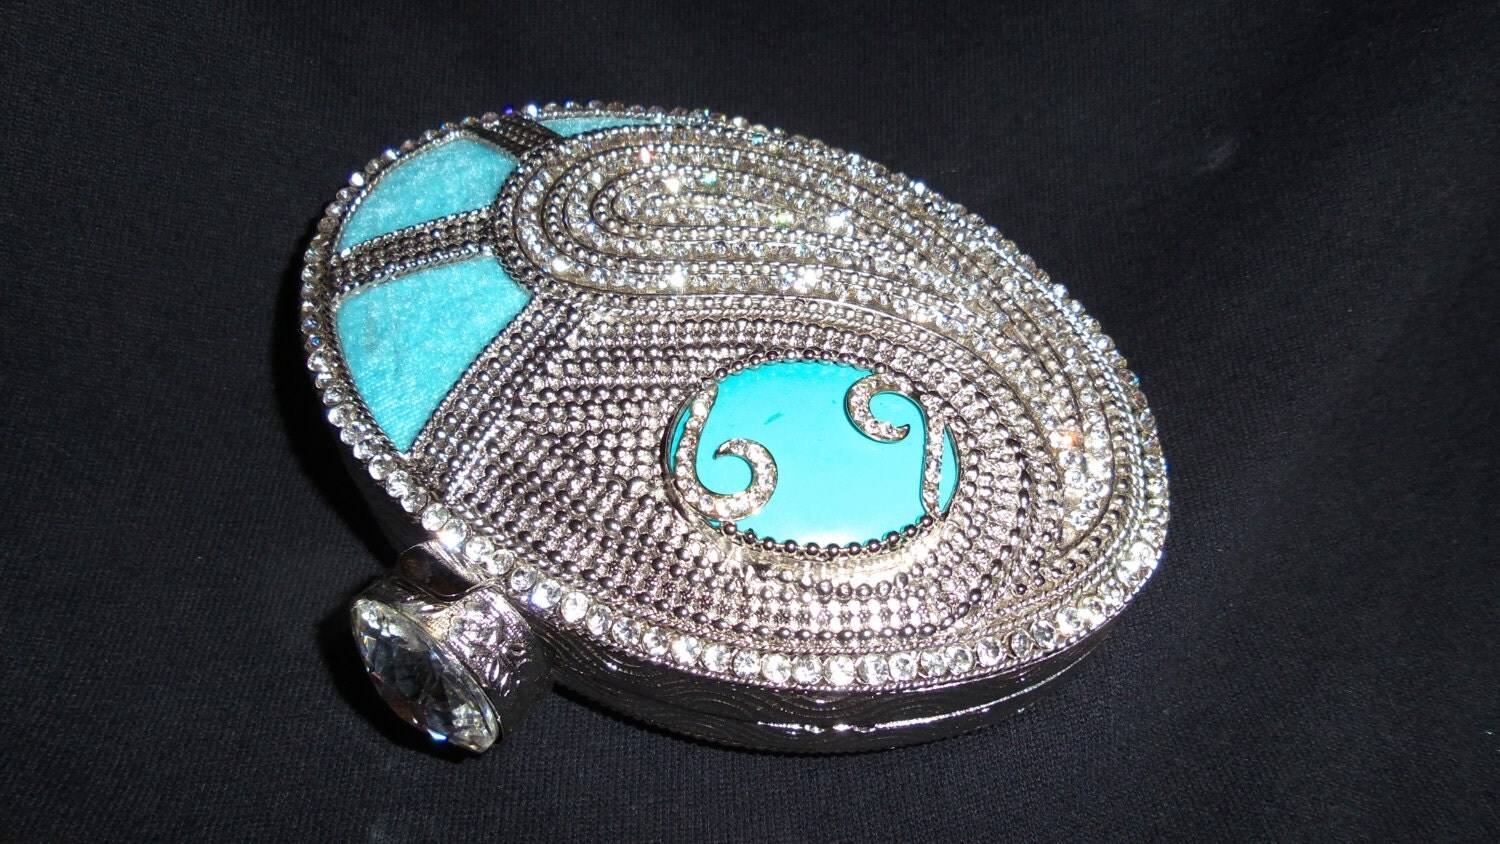 Silver metal clutch purse embellished with turquoise  white rhinestones AQUA OPTIMISM  bridesmaid gift  gifts for her  aqua clutch